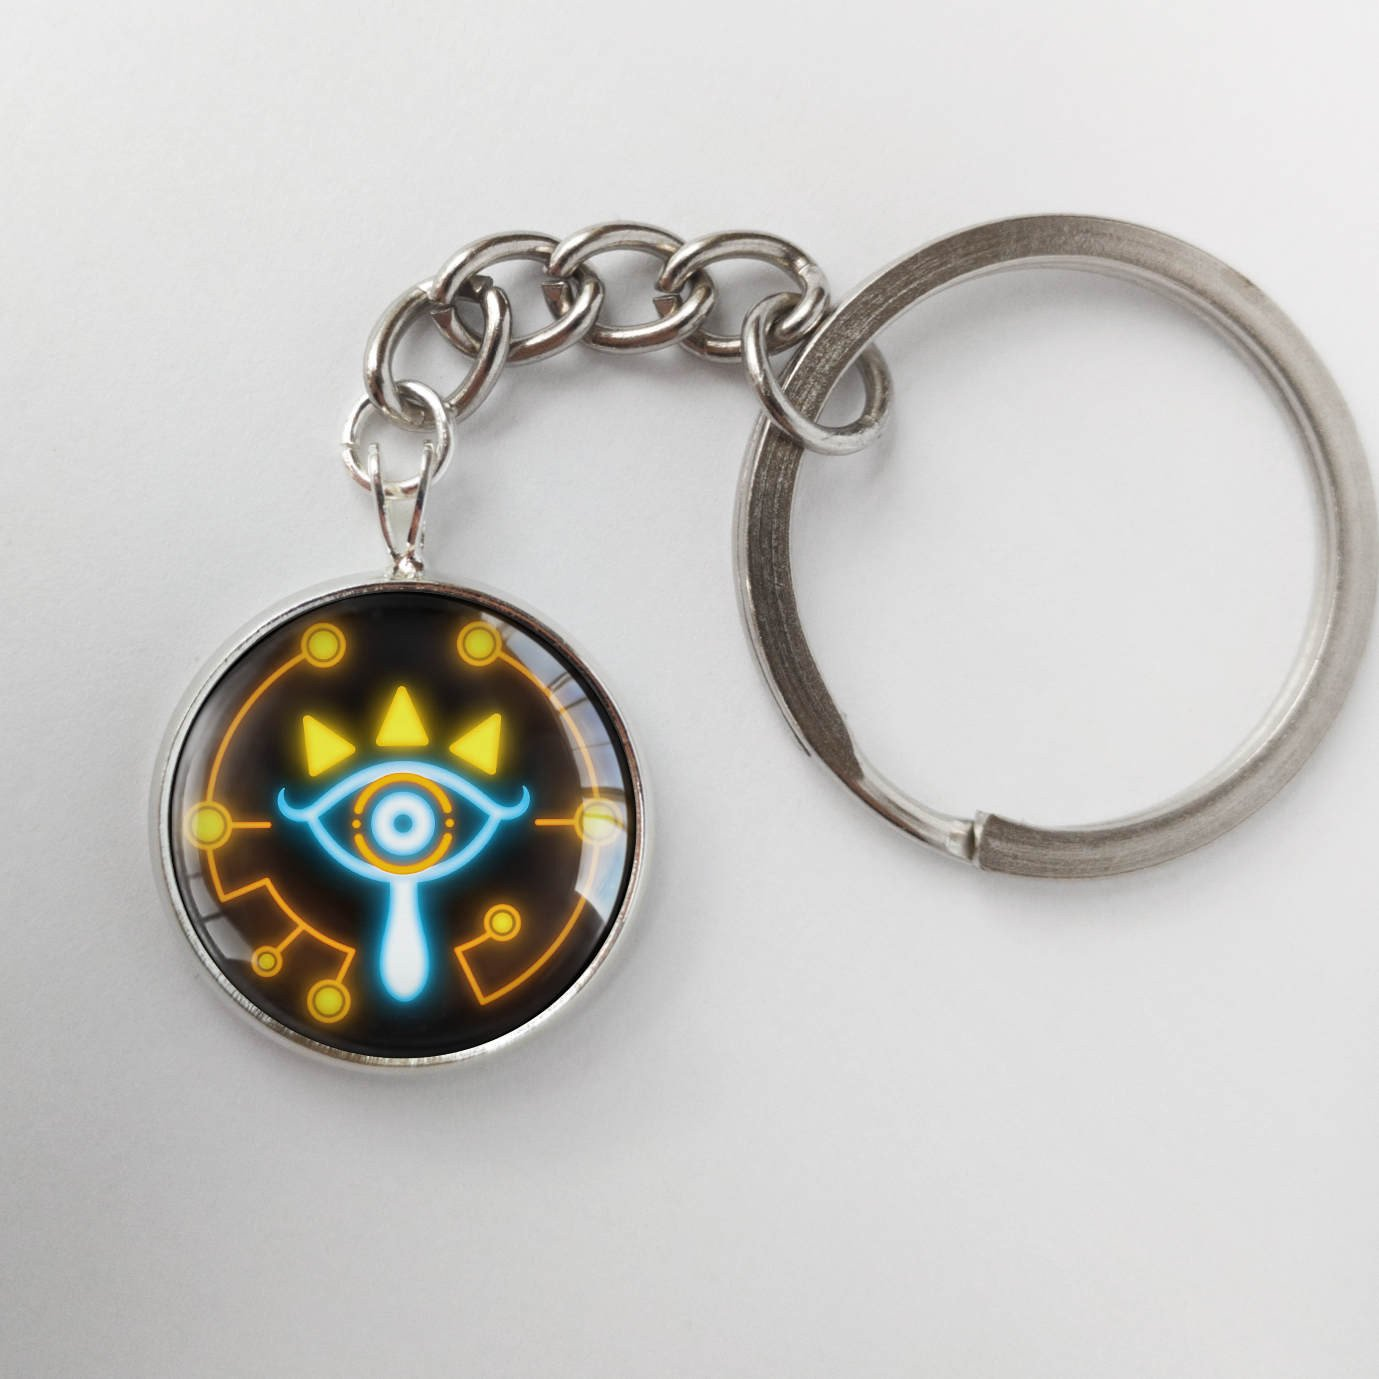 Sheikah Slate Template Zelda Botw Sheikah Slate Eye Symbol Breath Of the Wild Key